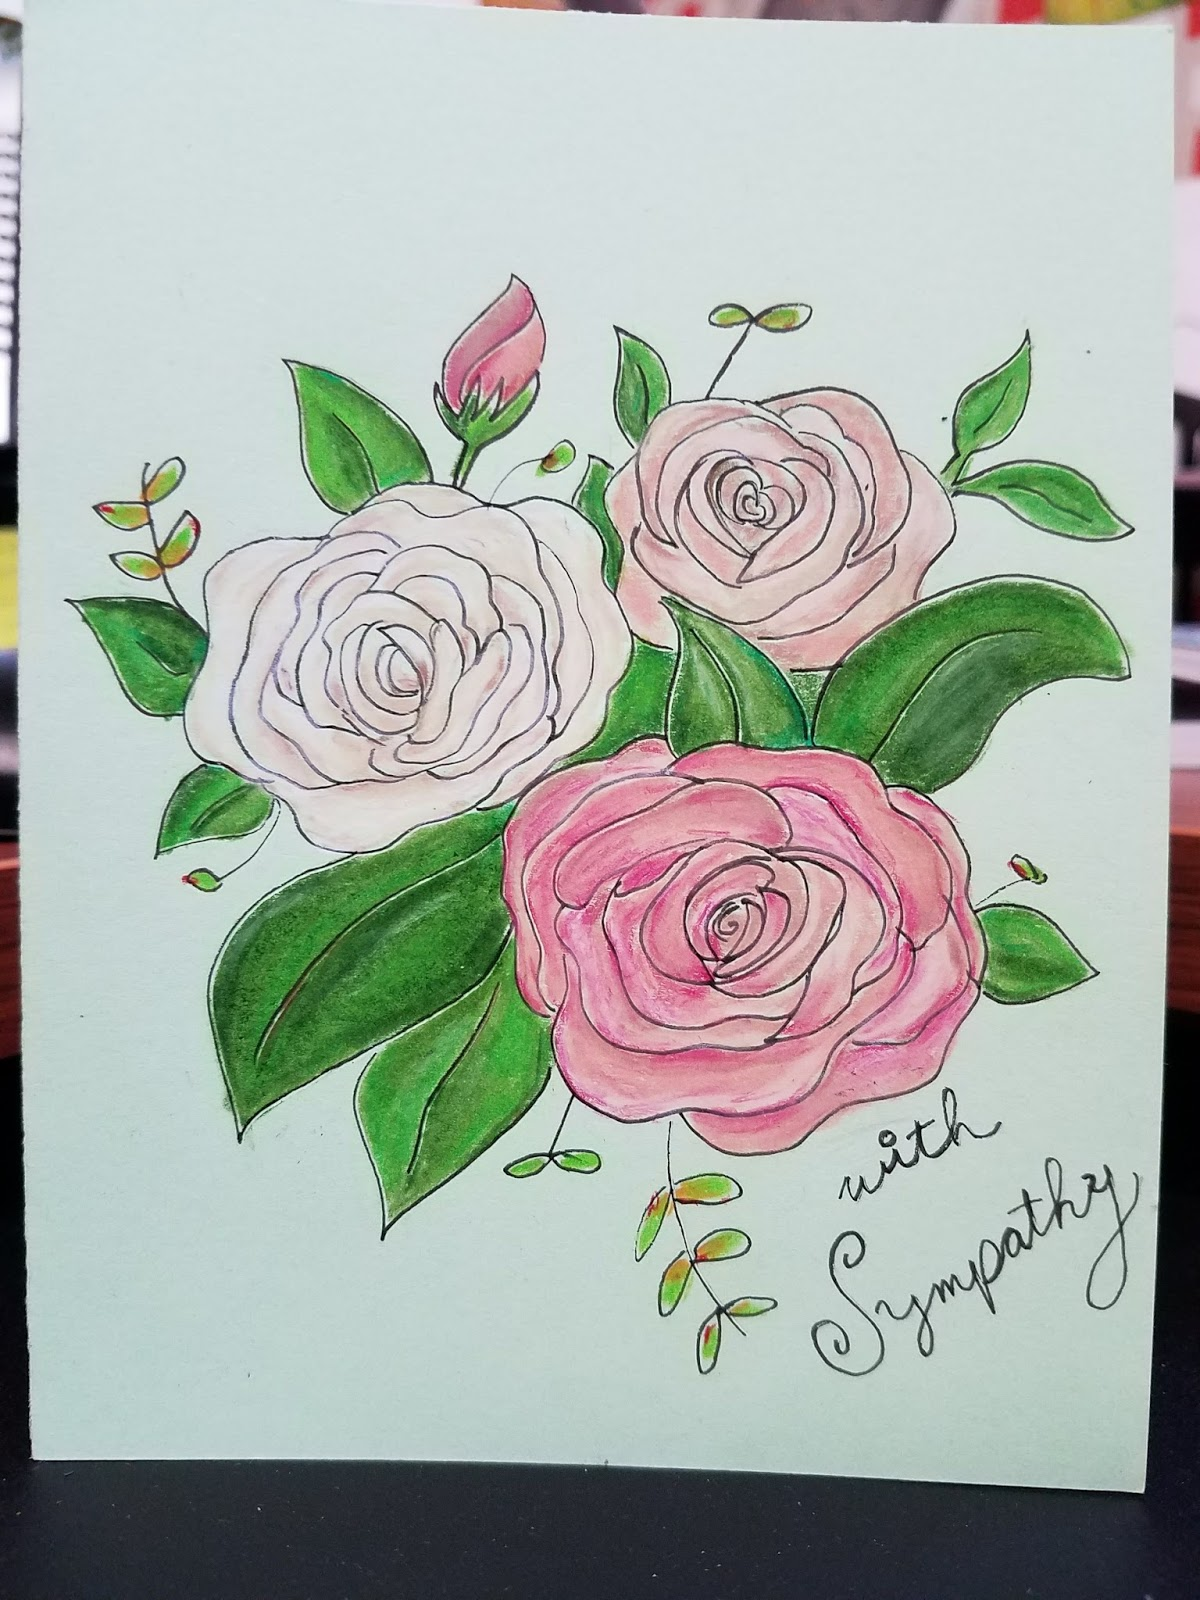 Debbie dots greeting card blog sympathy flowers for janets sympathy card on the loss of her mother i did a drawing of white and pink roses on a light green background there really arent any words to izmirmasajfo